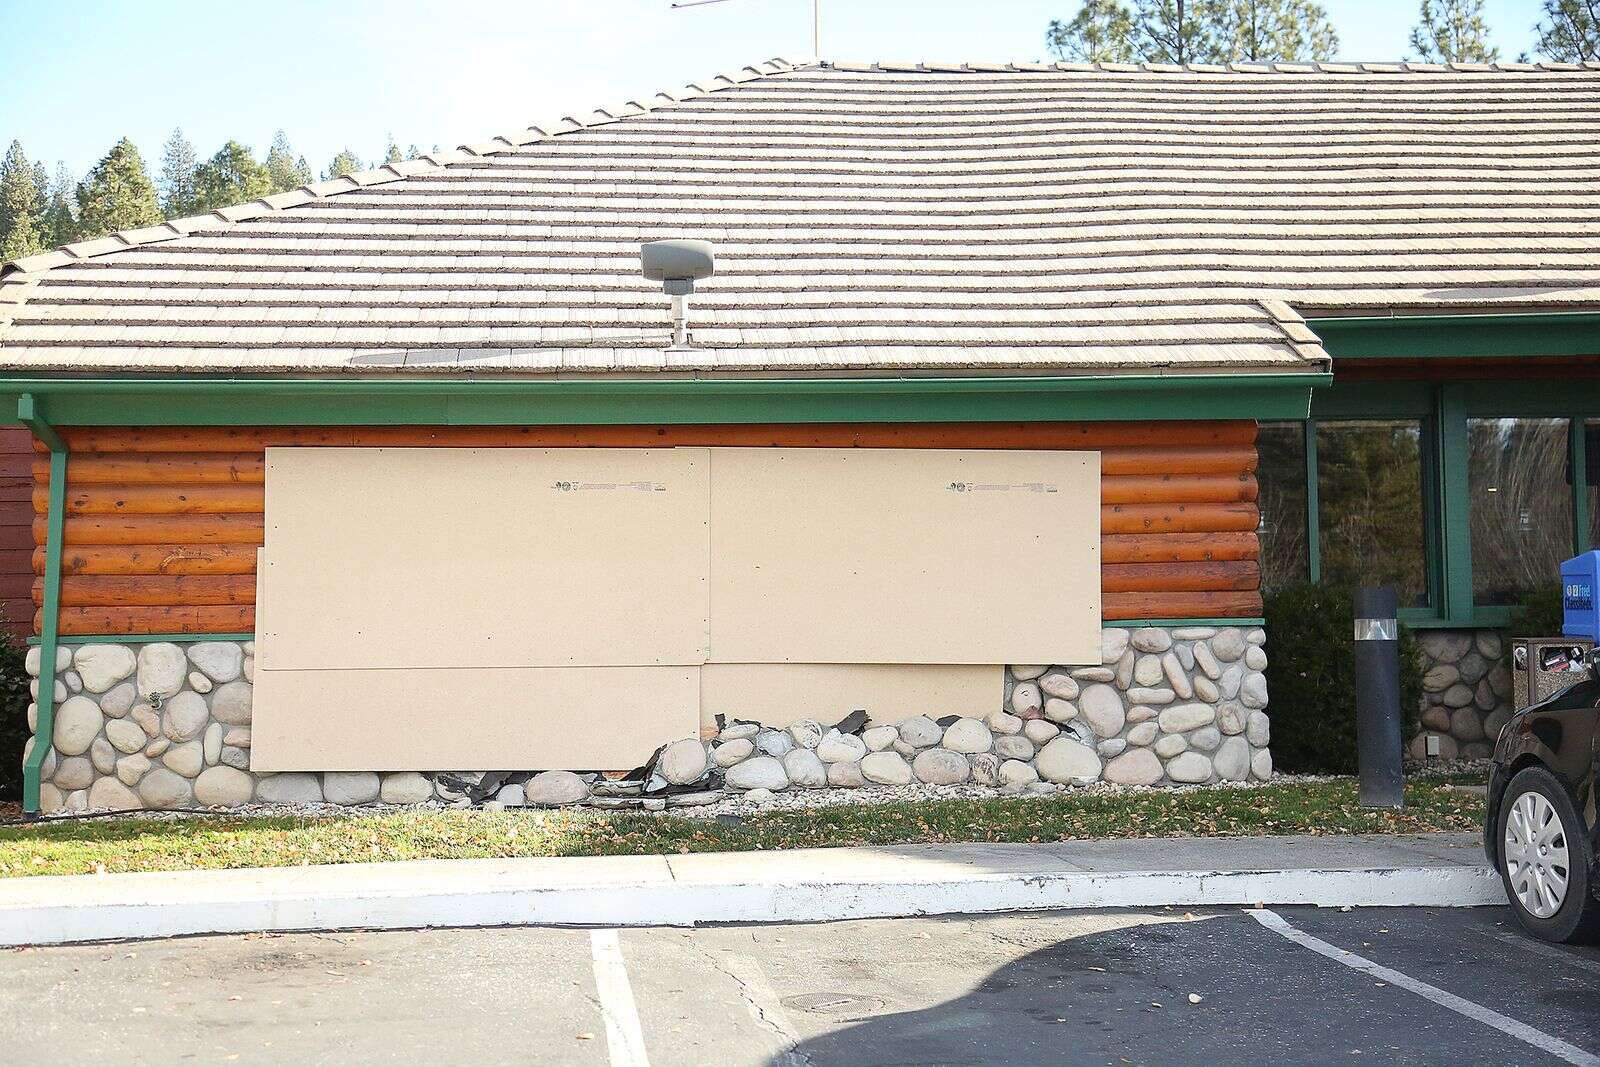 The side of the Lumberjack's Restaurant in Grass Valley's Glenbrook Basin where an unknown vehicle crashed into the building, has since been shored up while awaiting full repairs.